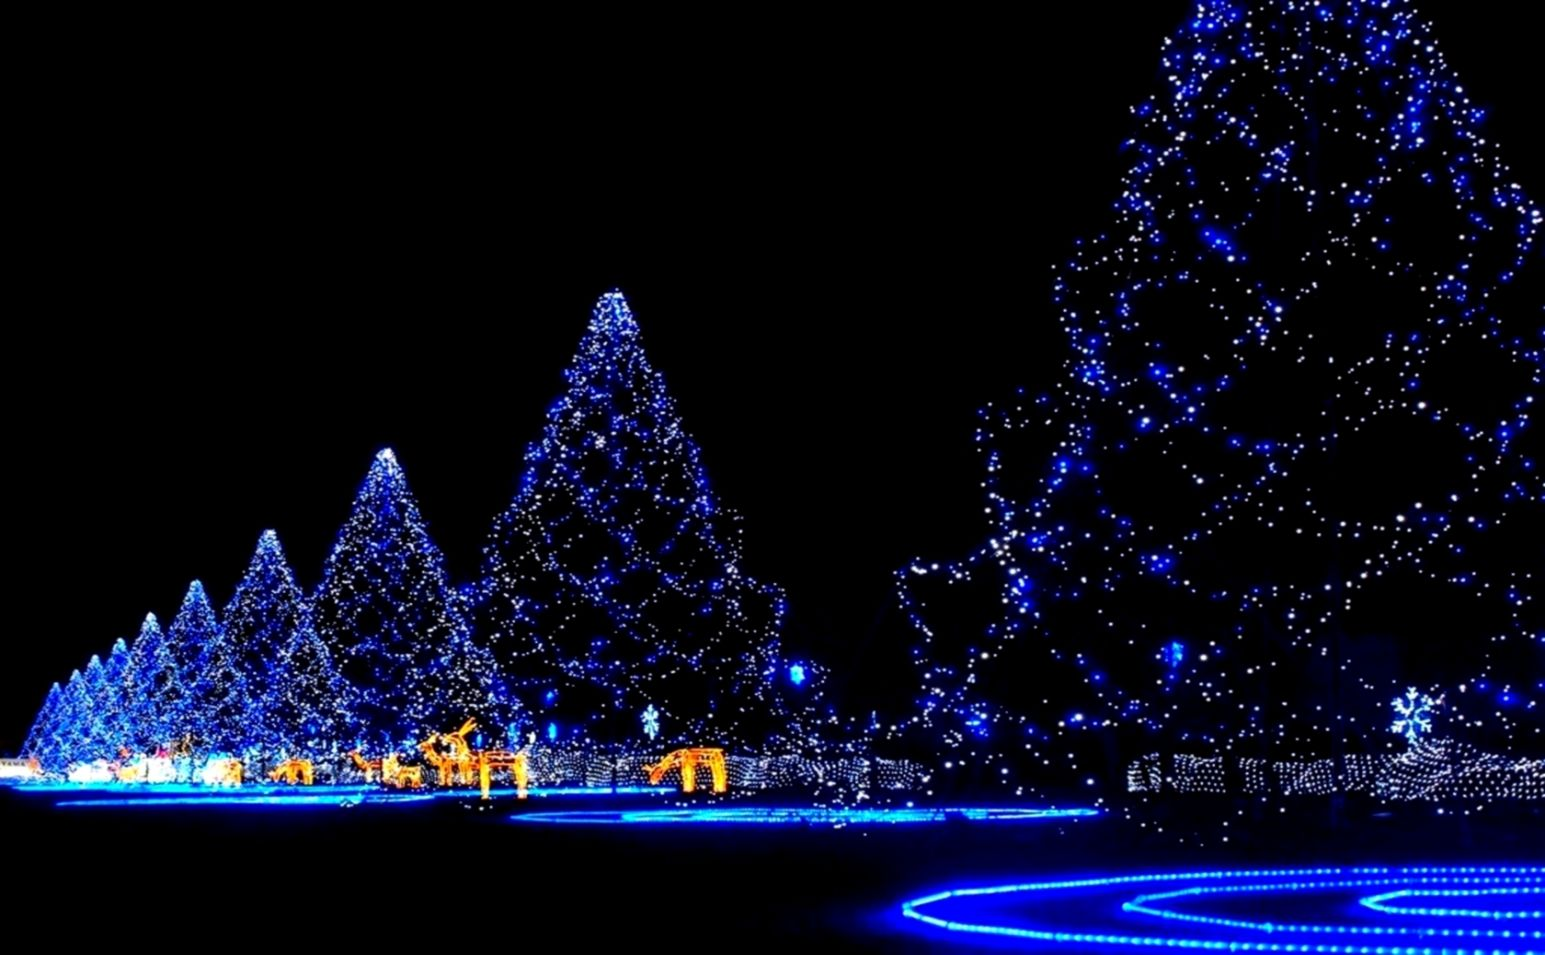 ec6b5b16913 228 Christmas Lights HD Wallpapers Background Images Wallpaper